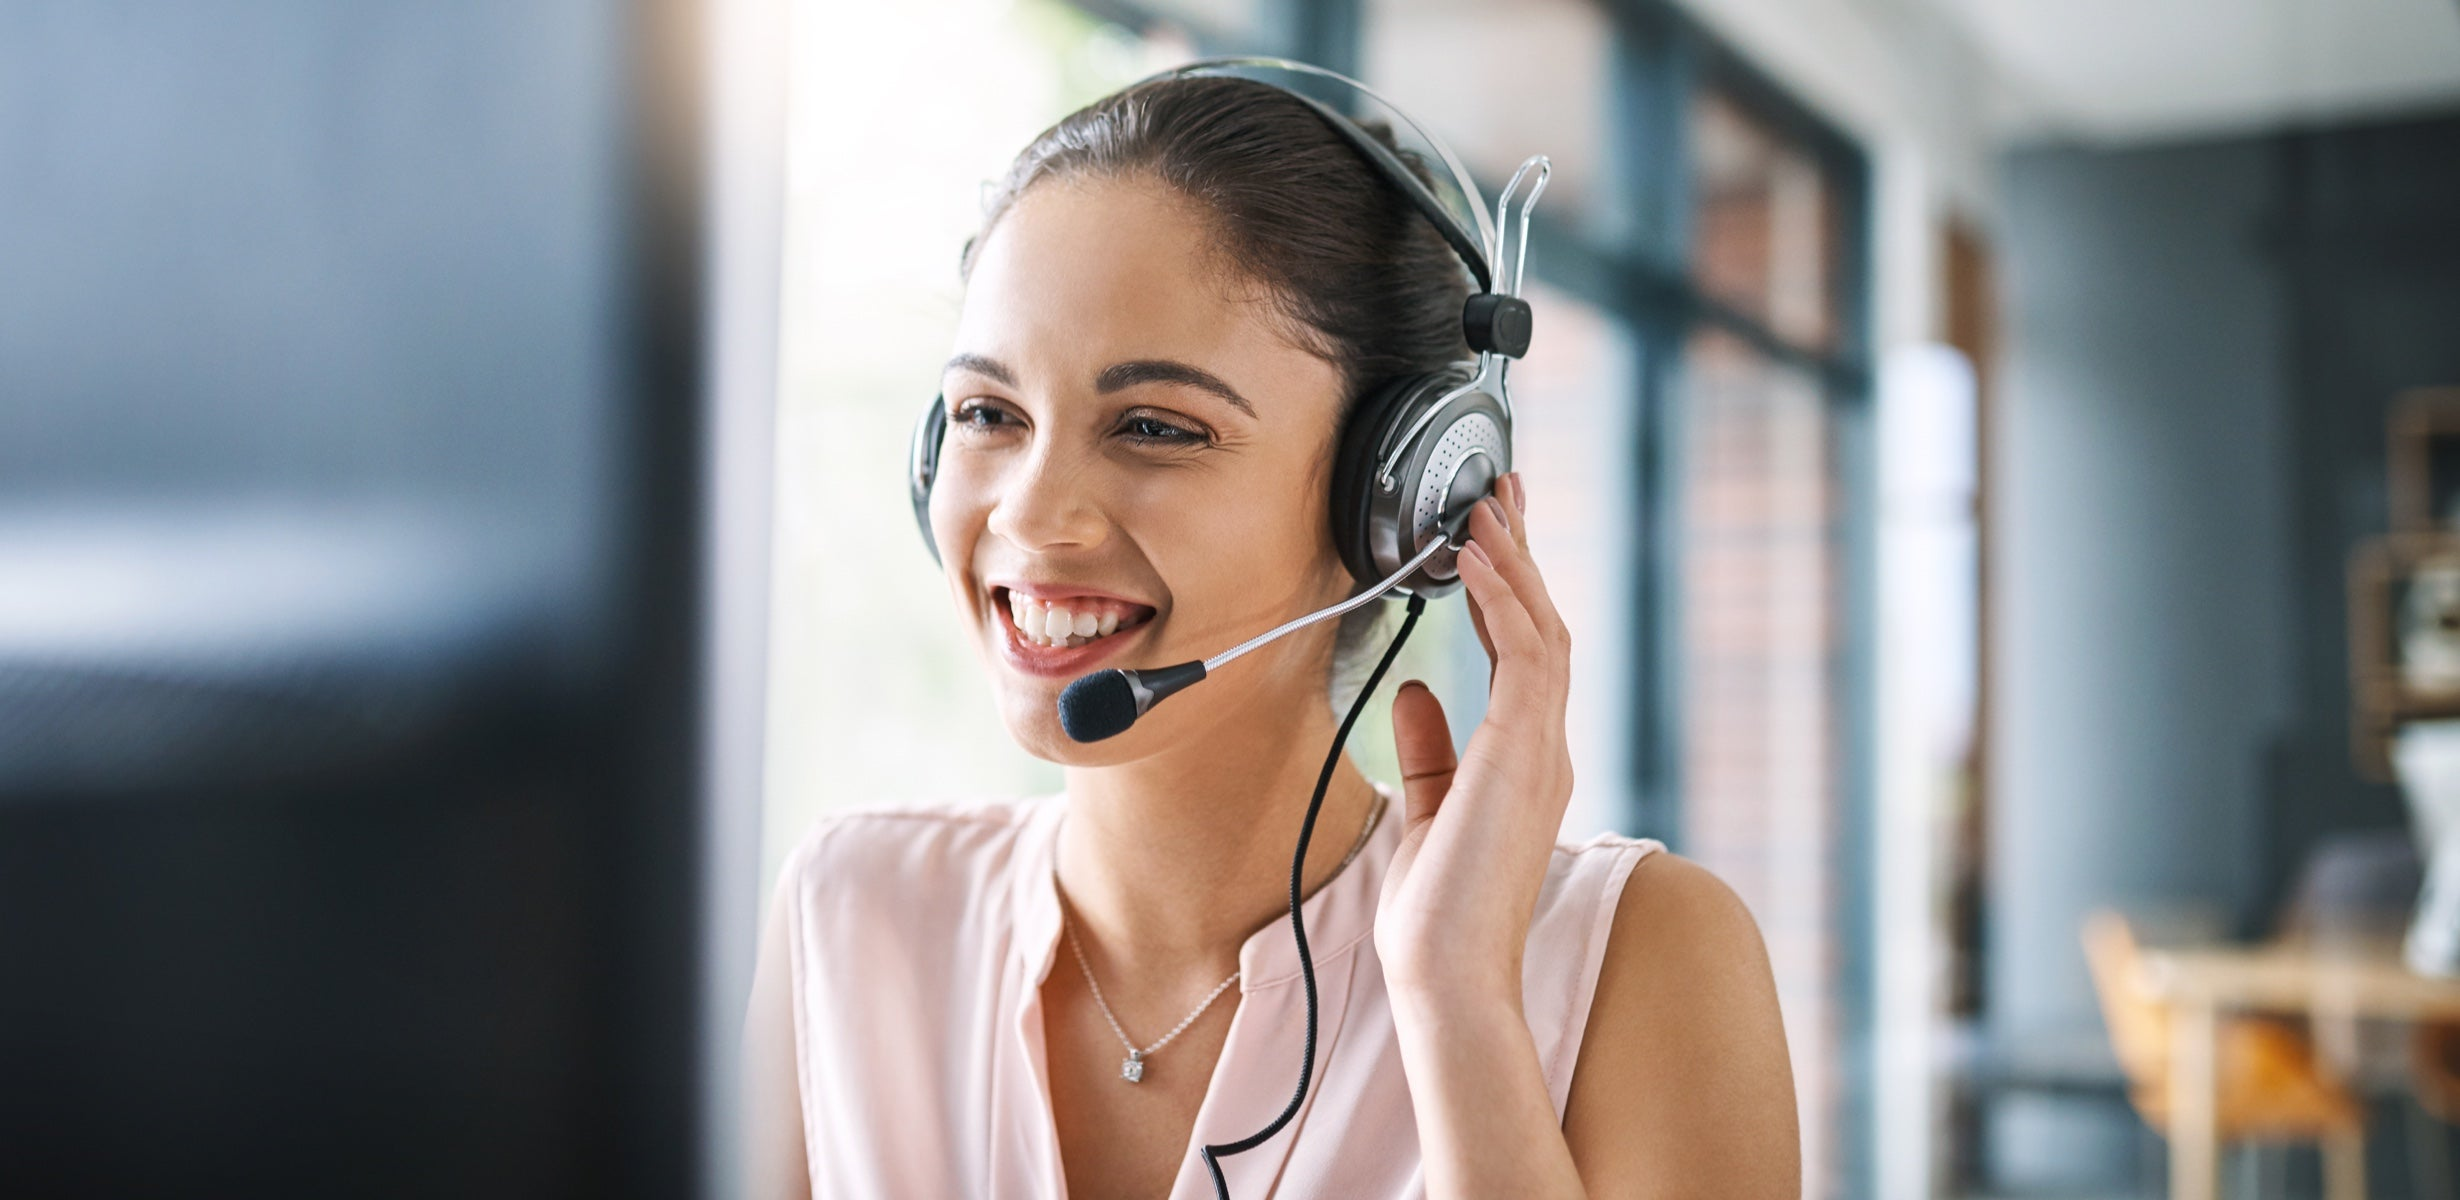 Remote Employee Strategies That Work – Tips From HR & IT